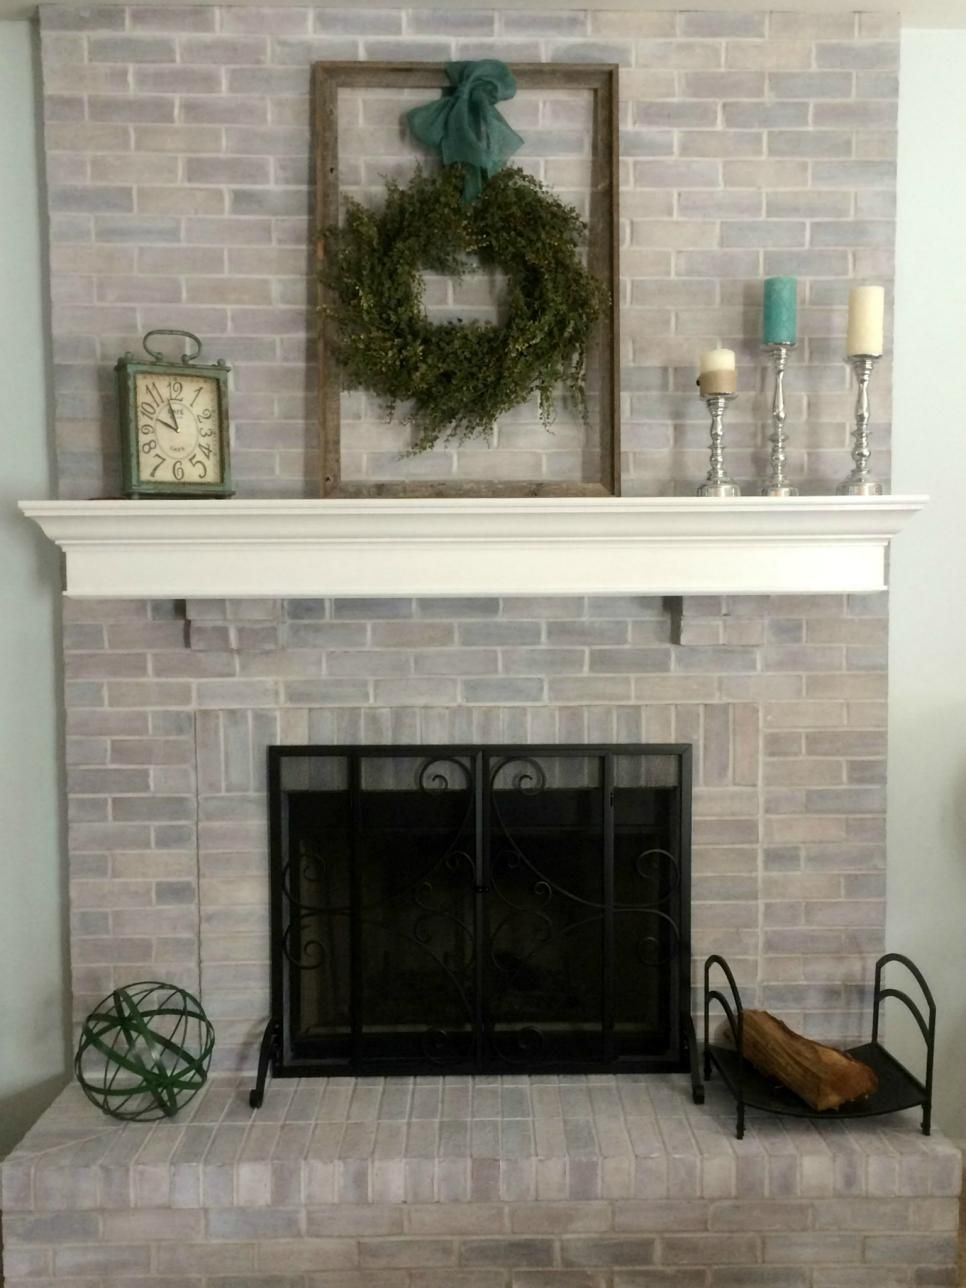 Floor To Ceiling Brick Fireplace Makeover Part - 18: Best 20+ Brick Fireplace Remodel Ideas On Pinterestu2014no Signup Required | Brick  Fireplace Makeover, Brick Fireplace And Painting Brick